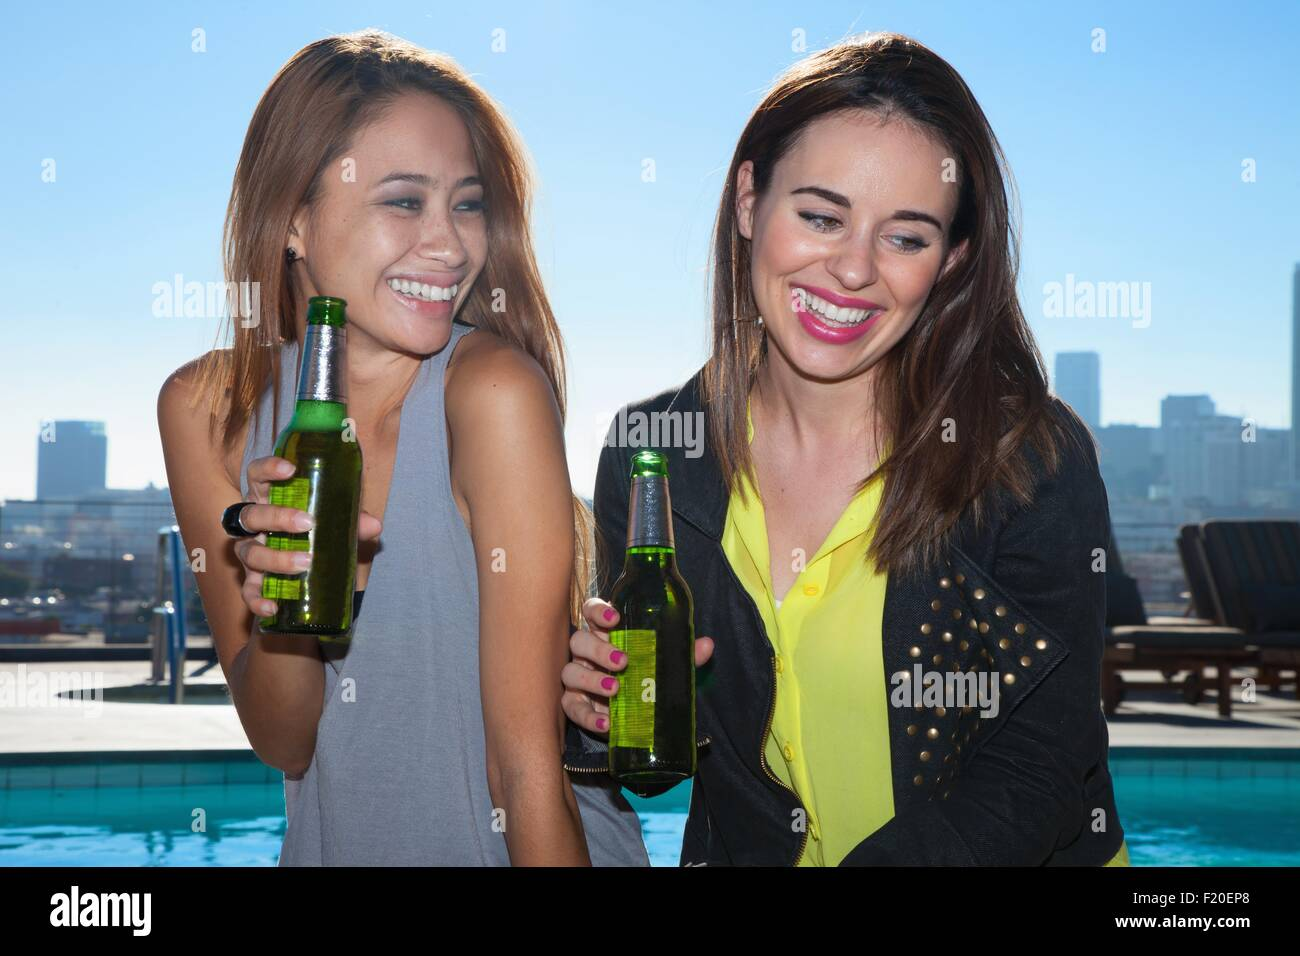 Two young adult female friends drinking beers at rooftop bar with Los Angeles skyline, USA - Stock Image